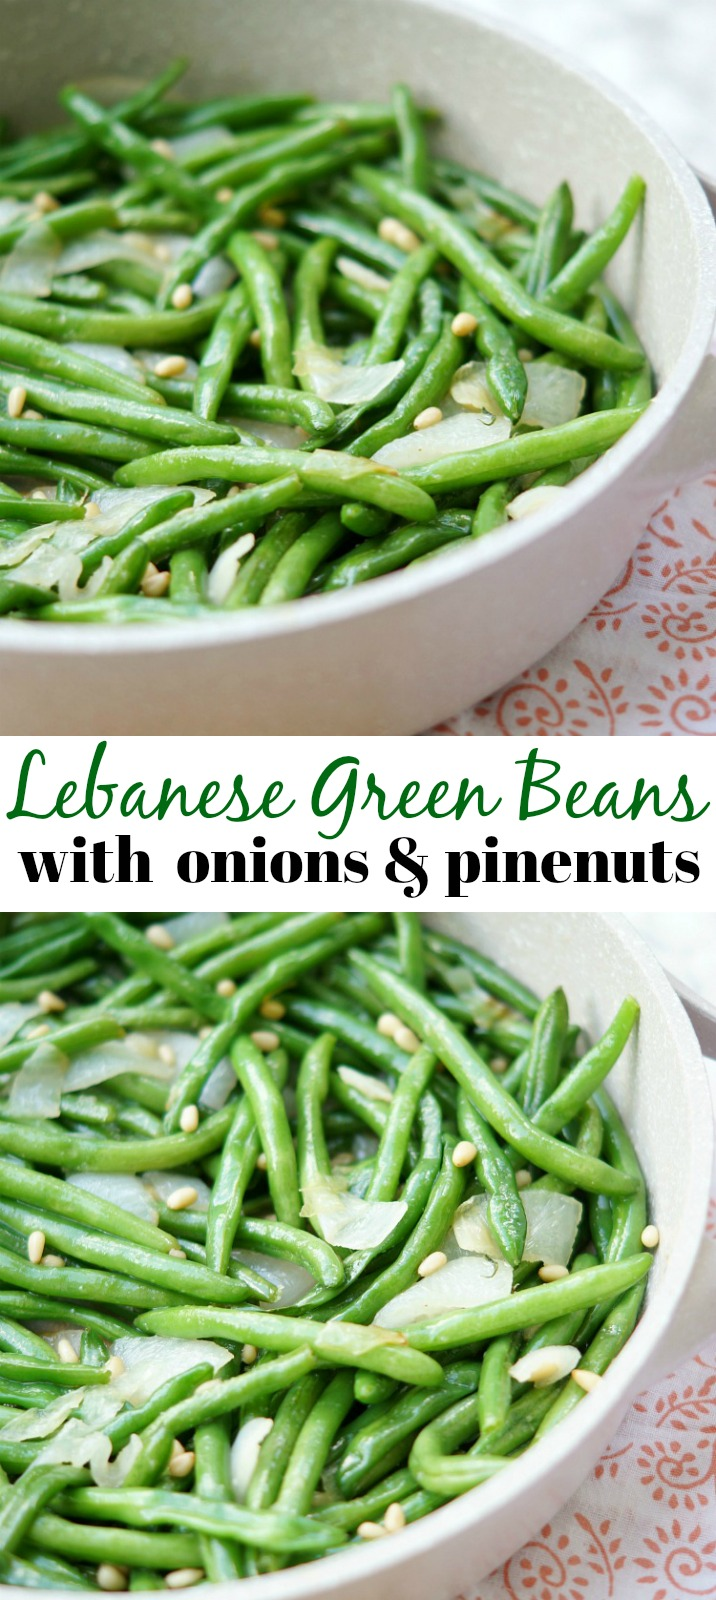 Lebanese Green Beans with Onions, Pine Nuts, and Olive Oil